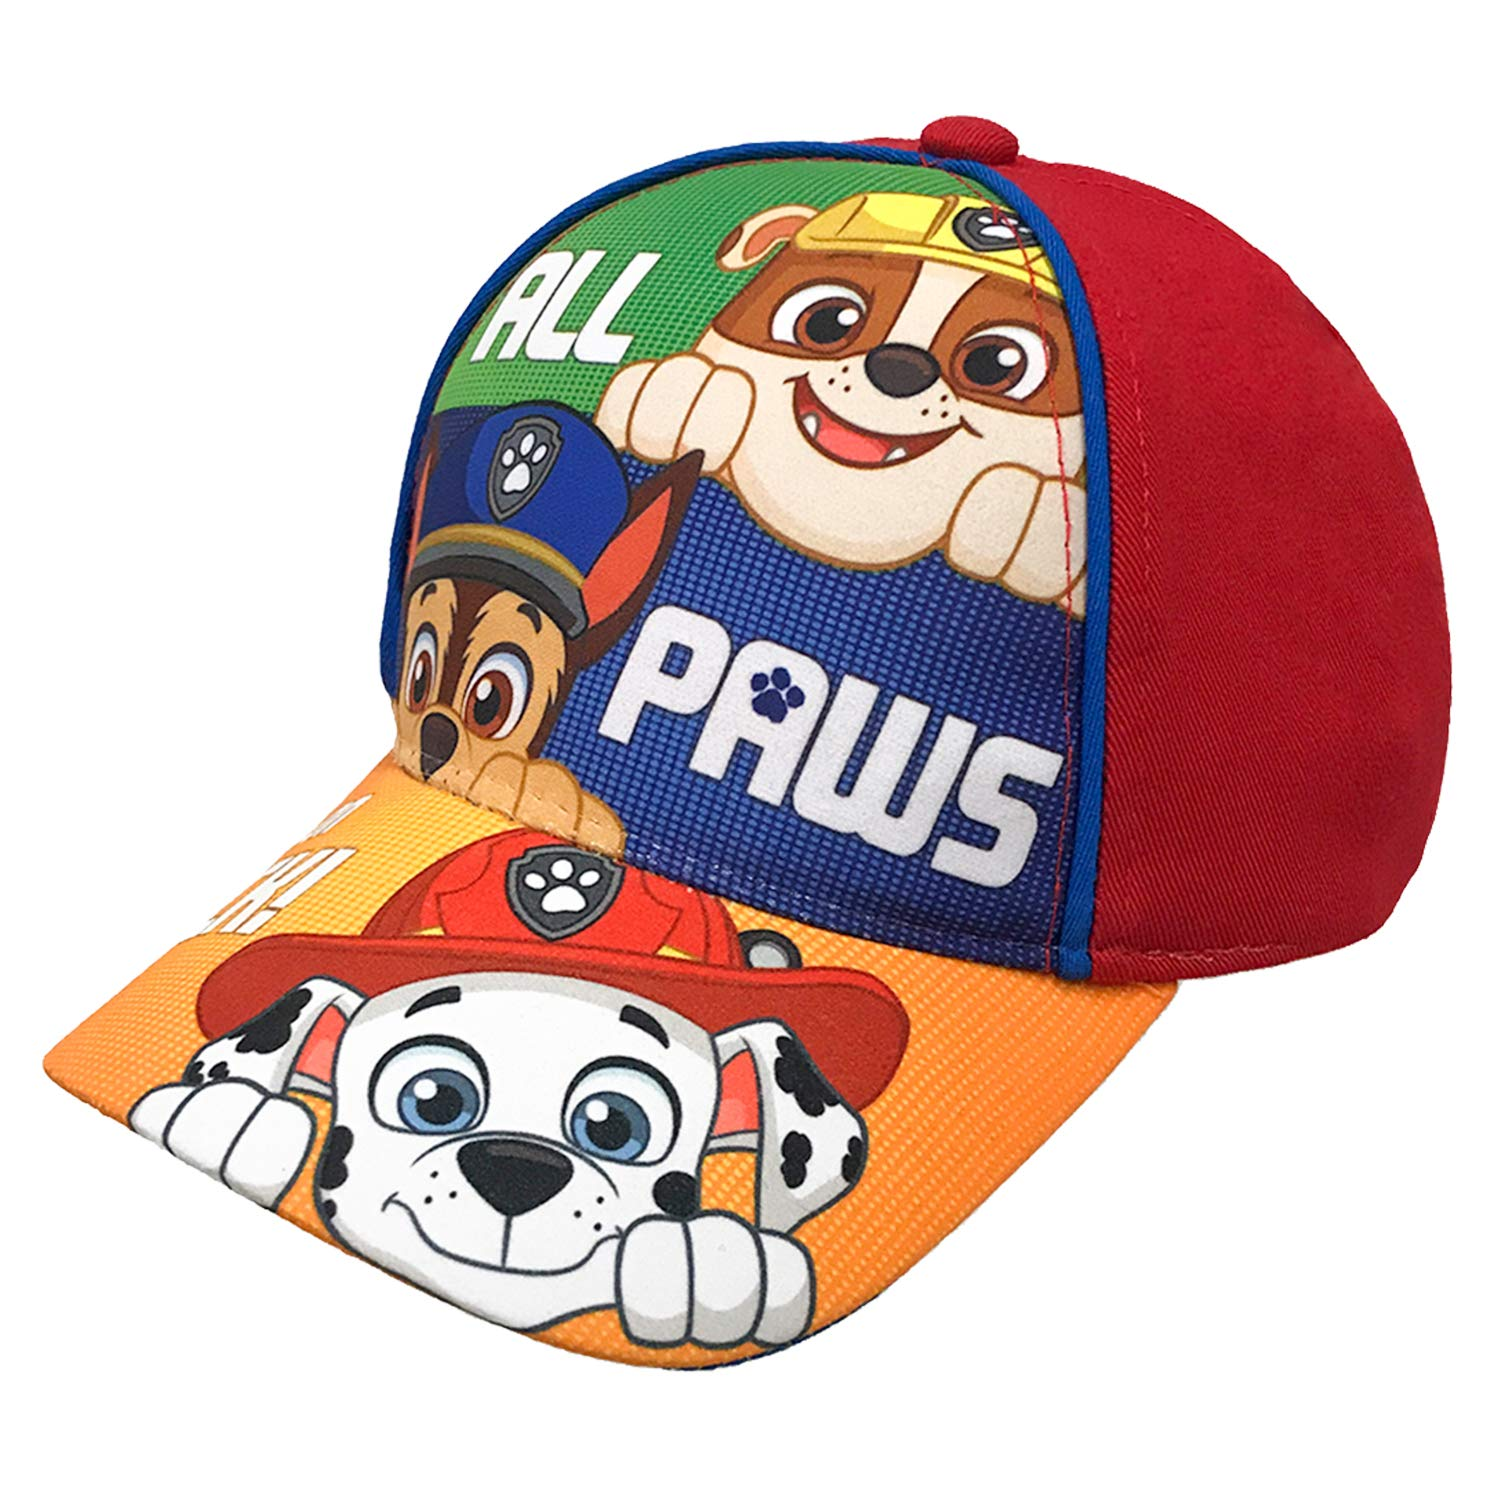 huge discount d7009 98758 Amazon.com  Nickelodeon Paw Patrol Character Toddler Boys Cotton Baseball  Cap Age 2-5  Clothing